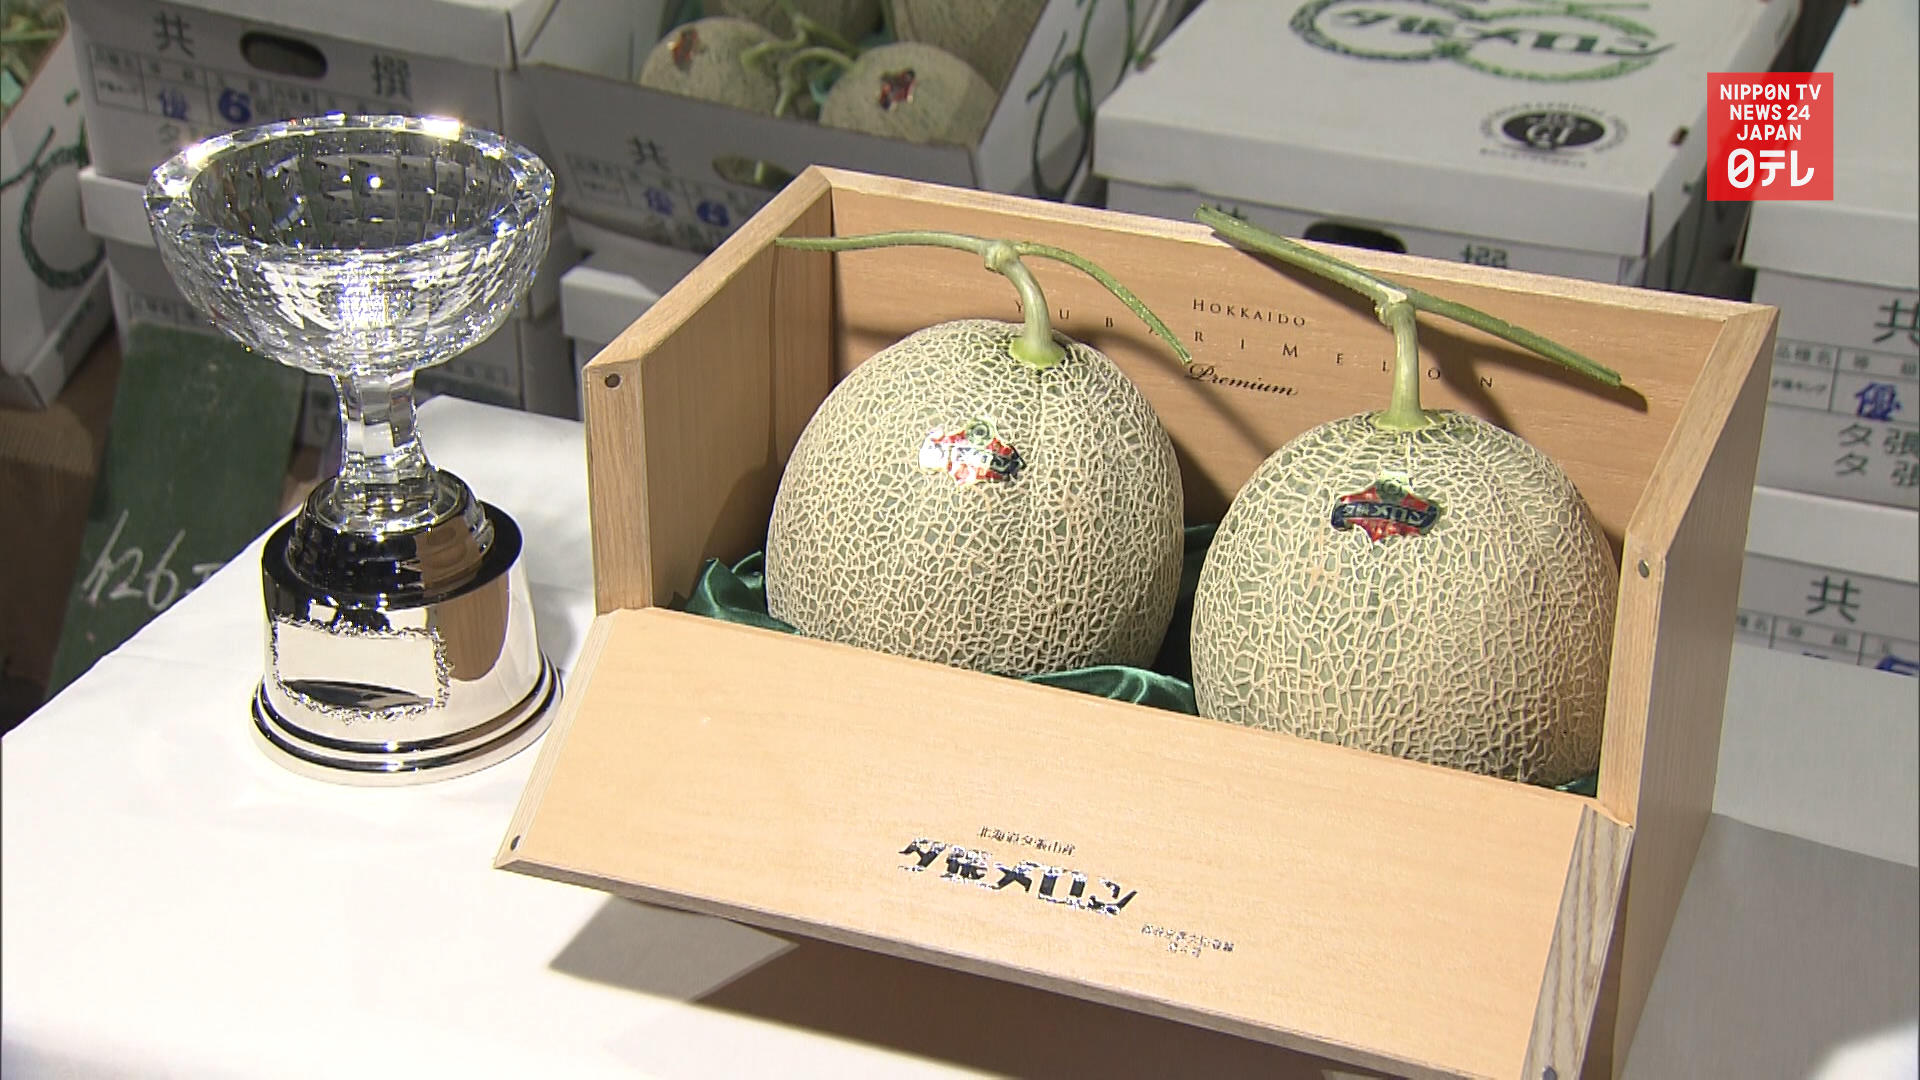 Price of high end Yubari melon fetches one 40th of last season's price